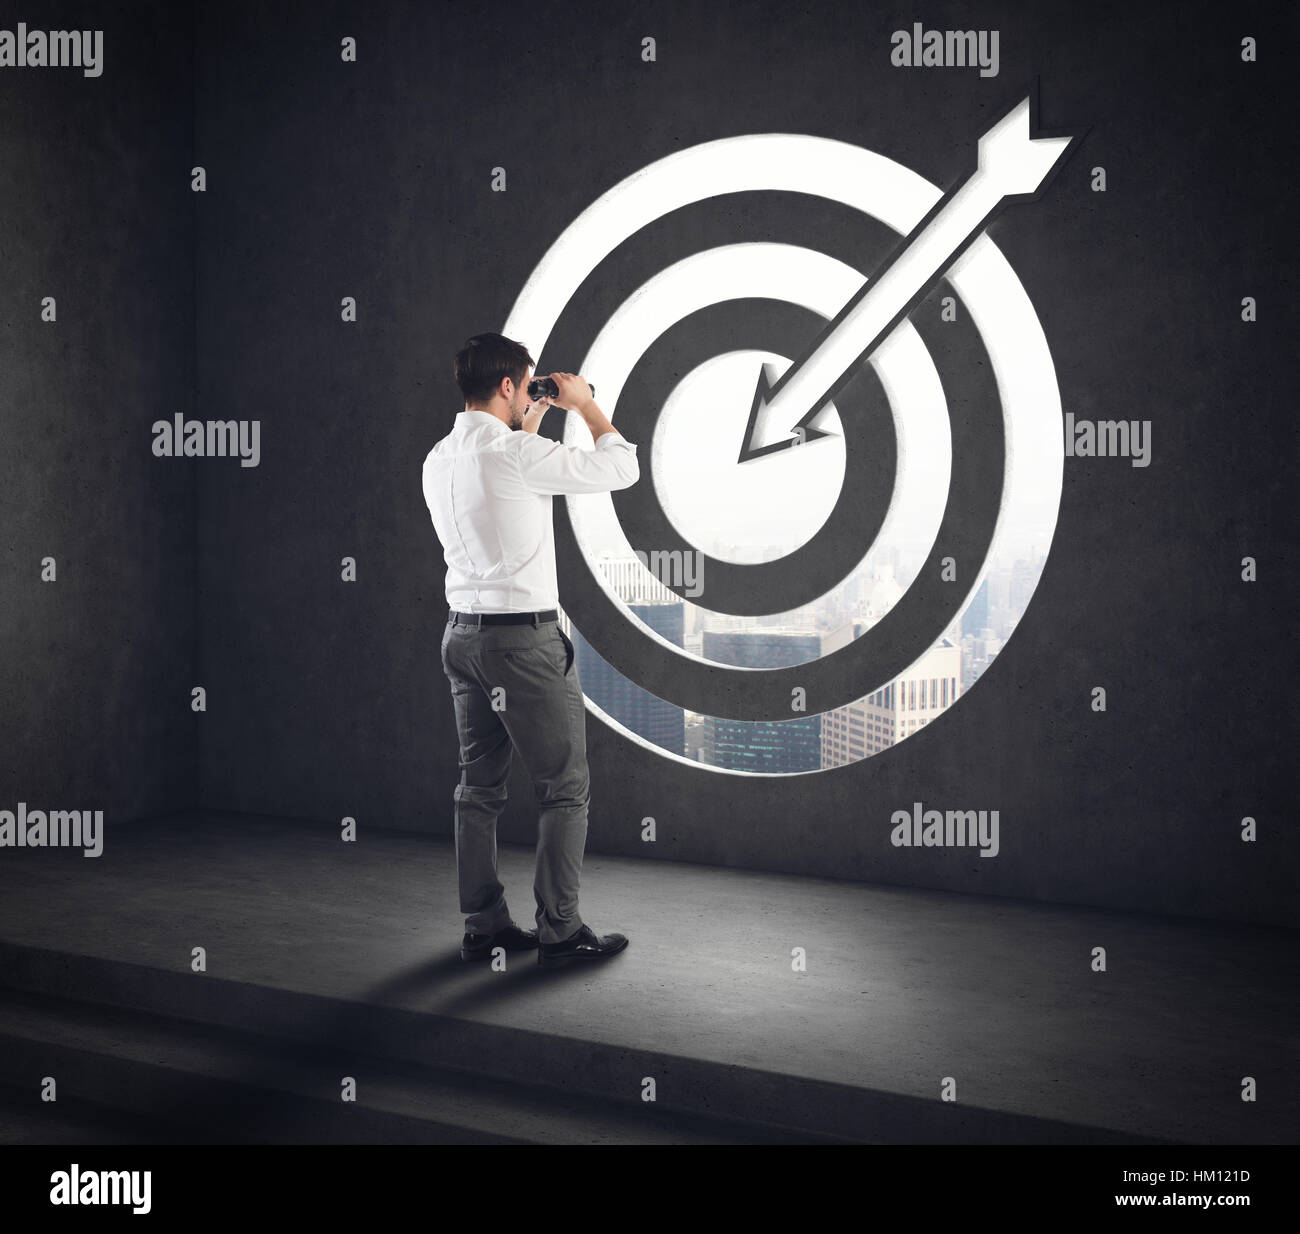 Arrive at a goal of success. Businessman successful vision . 3D Rendering - Stock Image